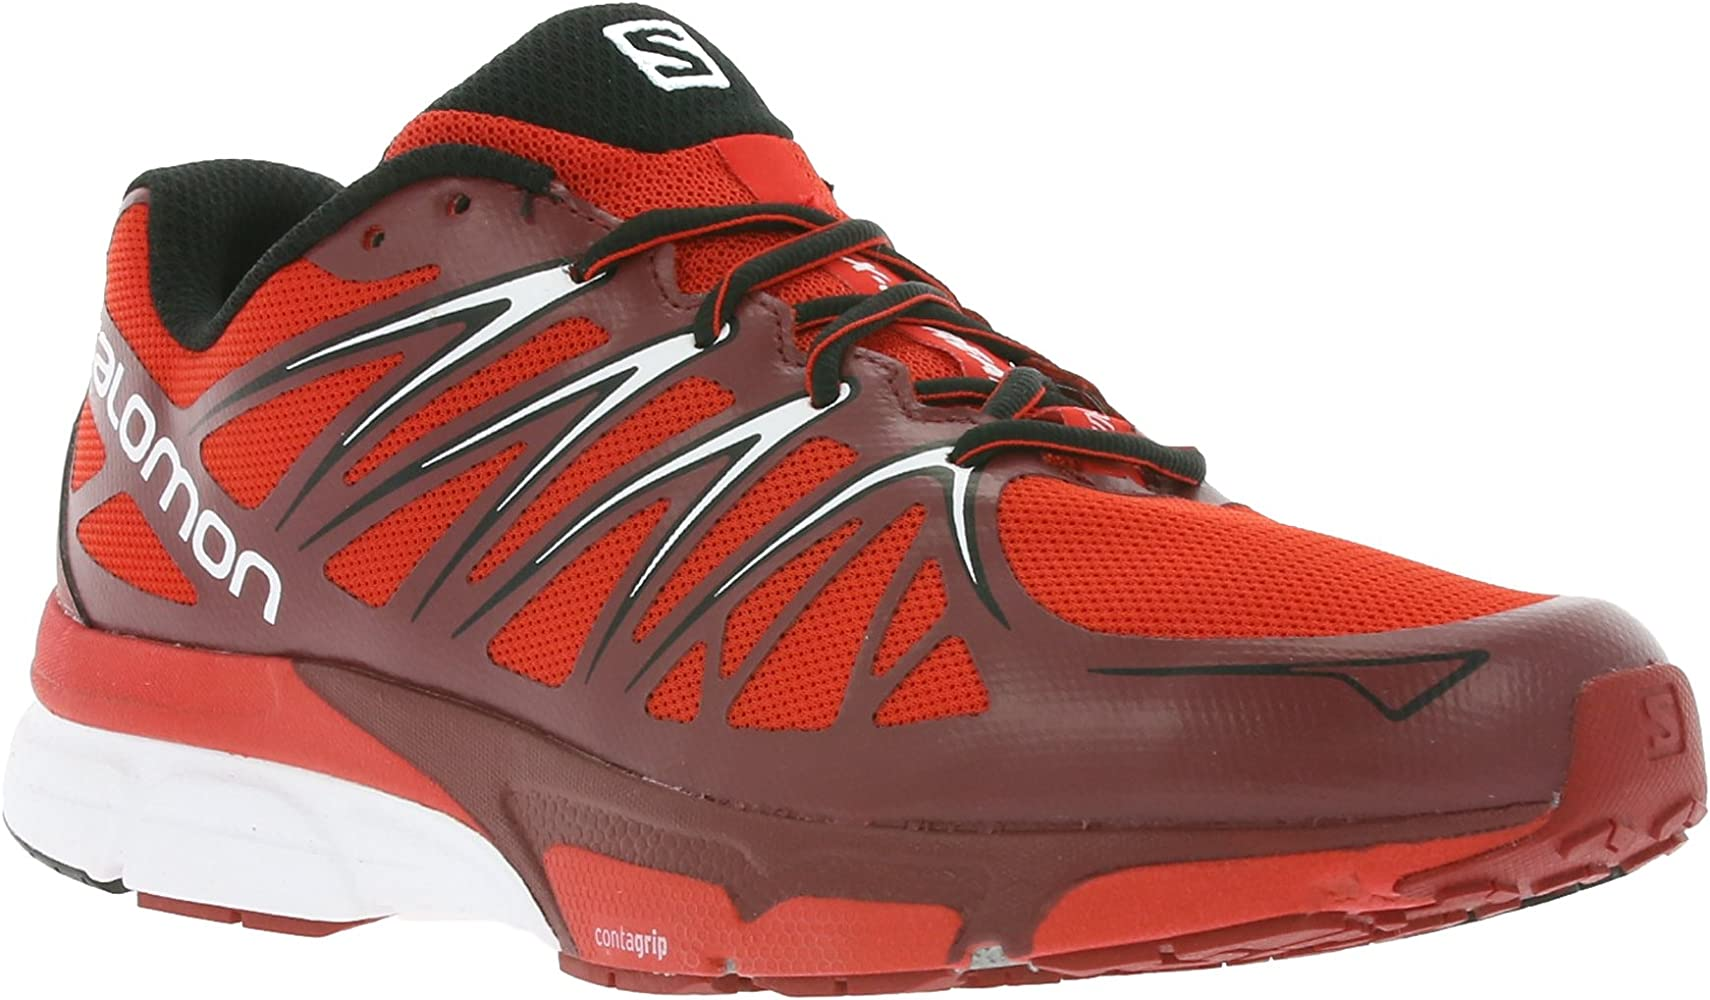 Salomon L37918800, Zapatillas de Trail Running para Hombre, Rojo (Radiant Red/BriqueX/Black), 40 EU: Amazon.es: Zapatos y complementos